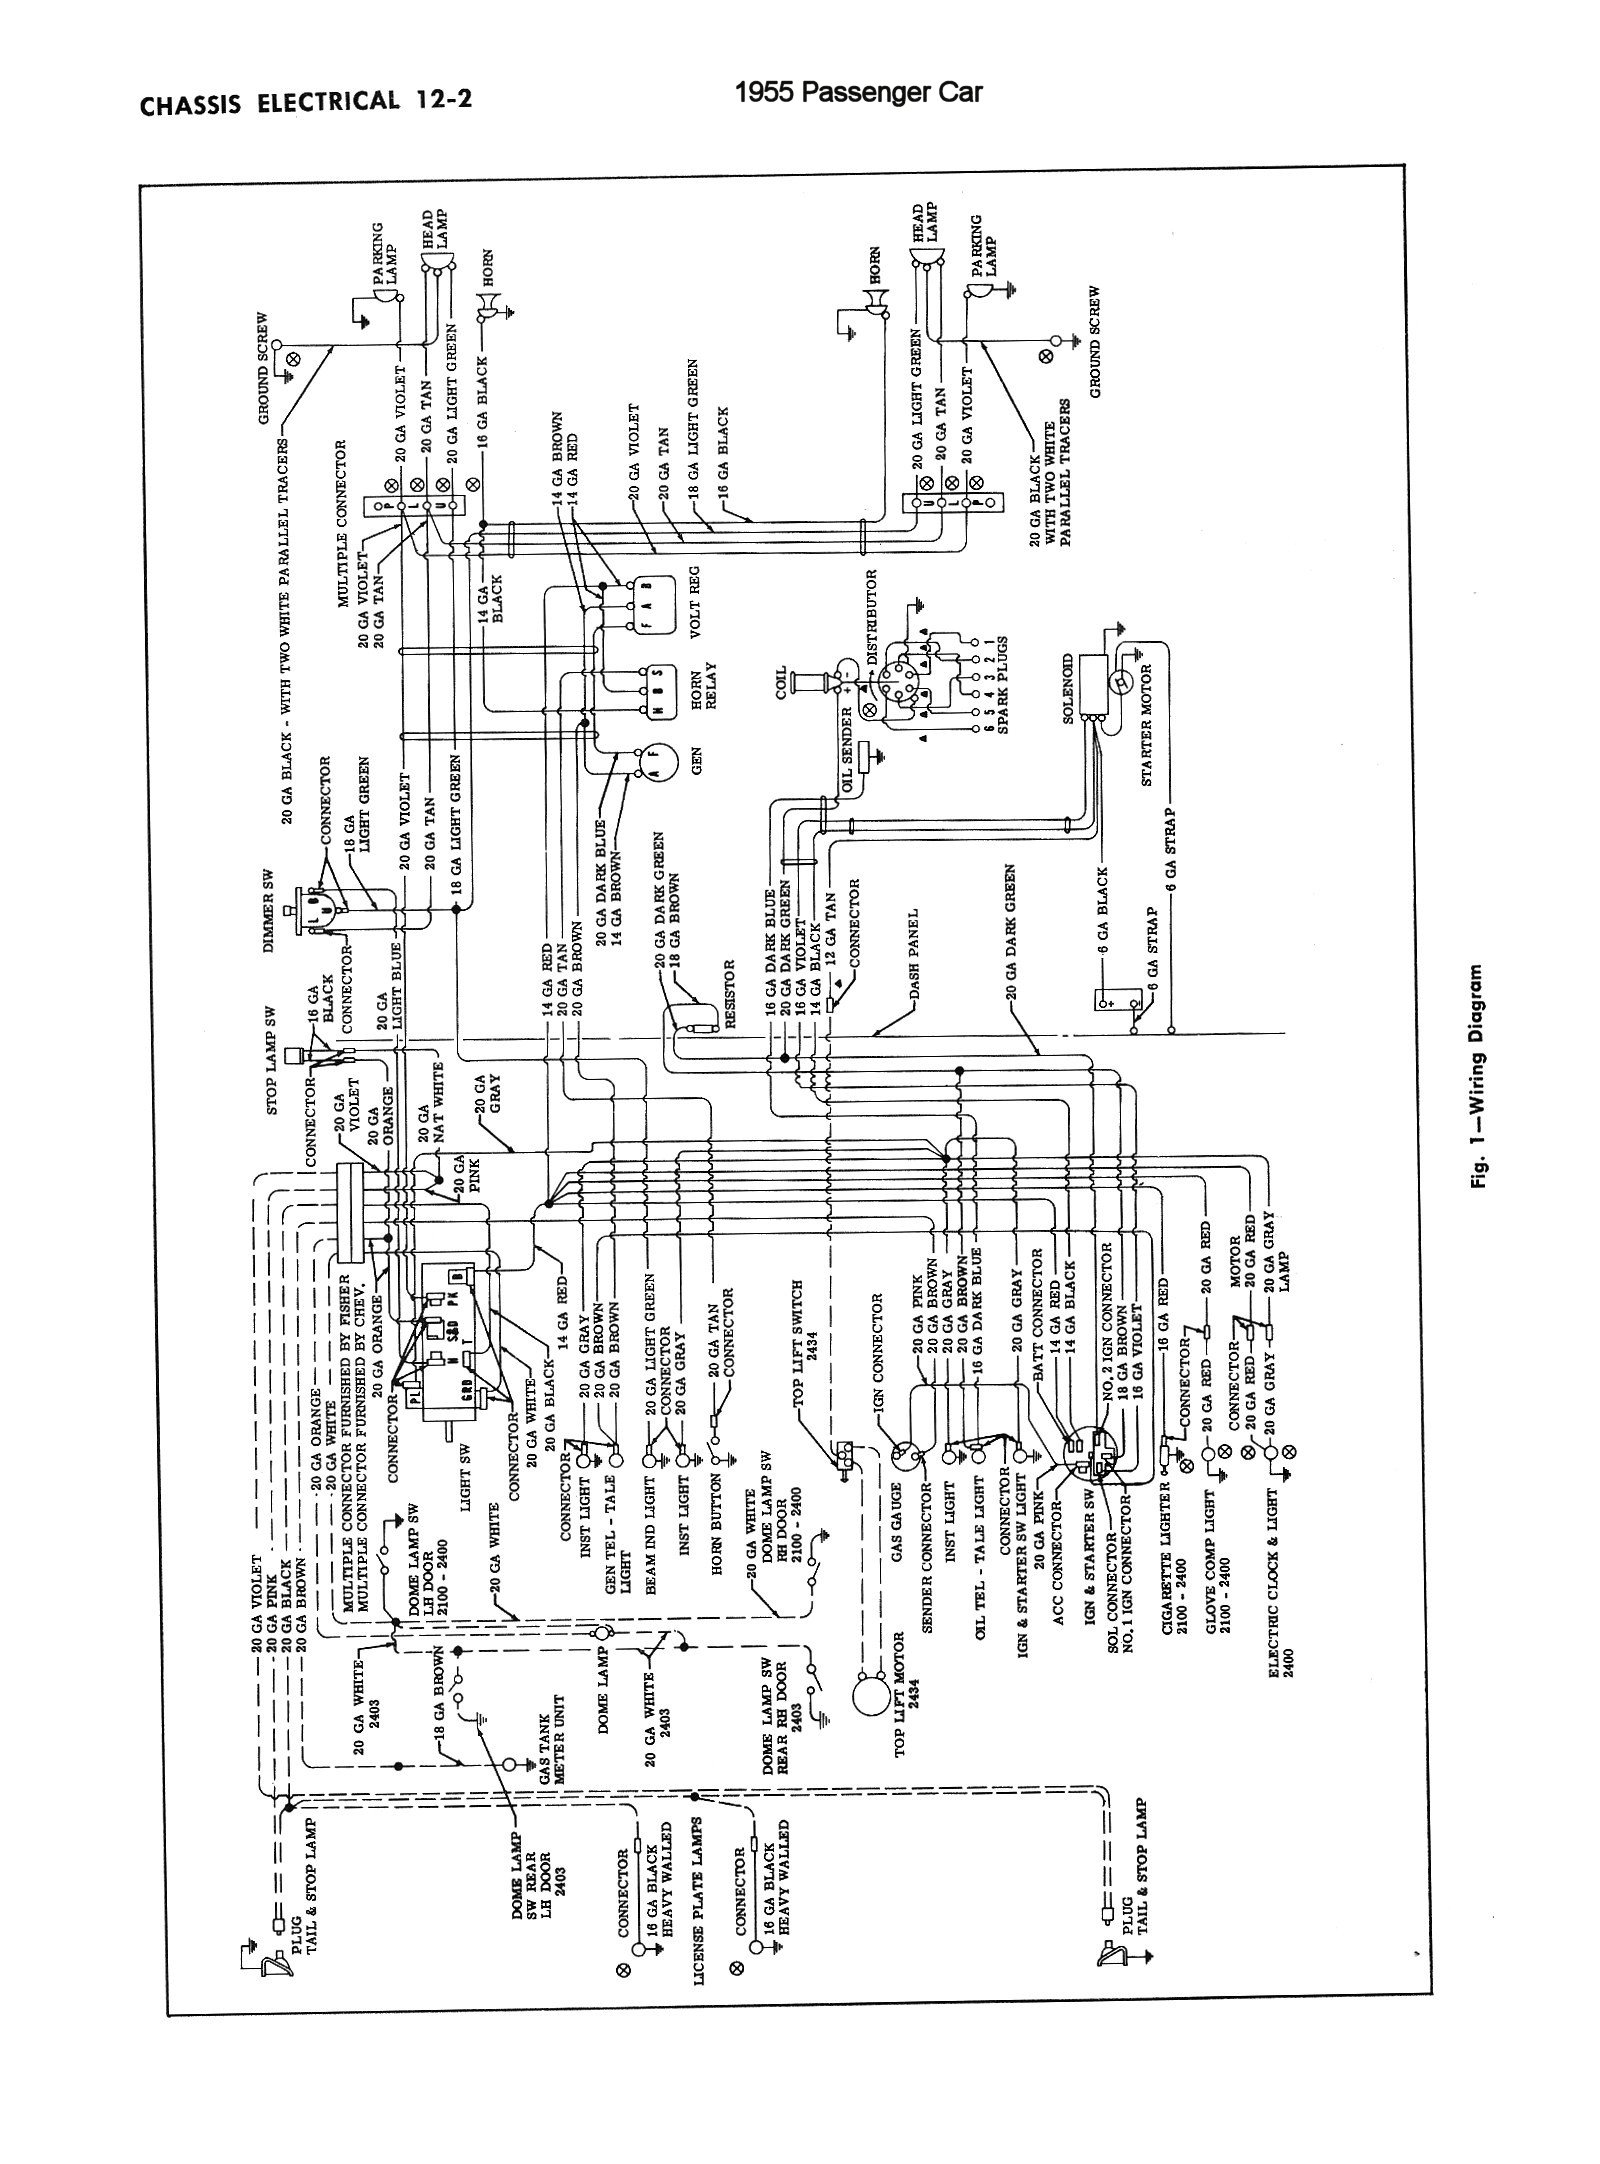 55csm1202 chevy wiring diagrams 55 chevy ignition wiring at bayanpartner.co